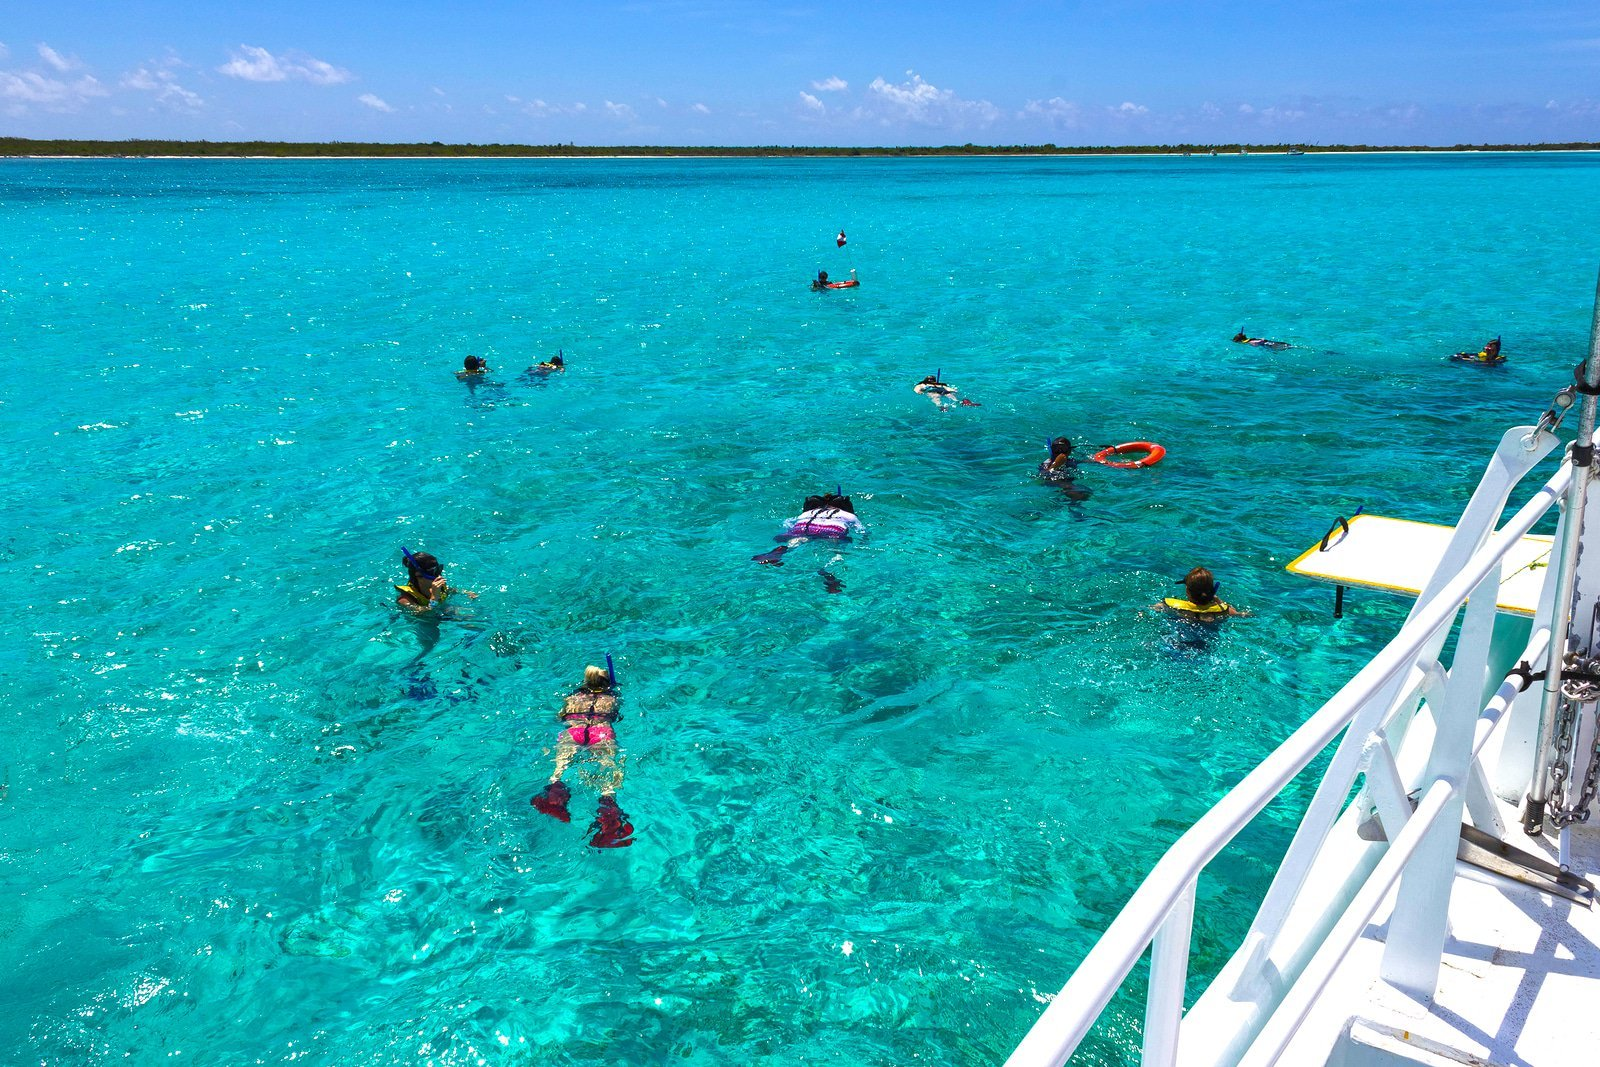 Day trips from Cancun: Snorkeling in Cozumel